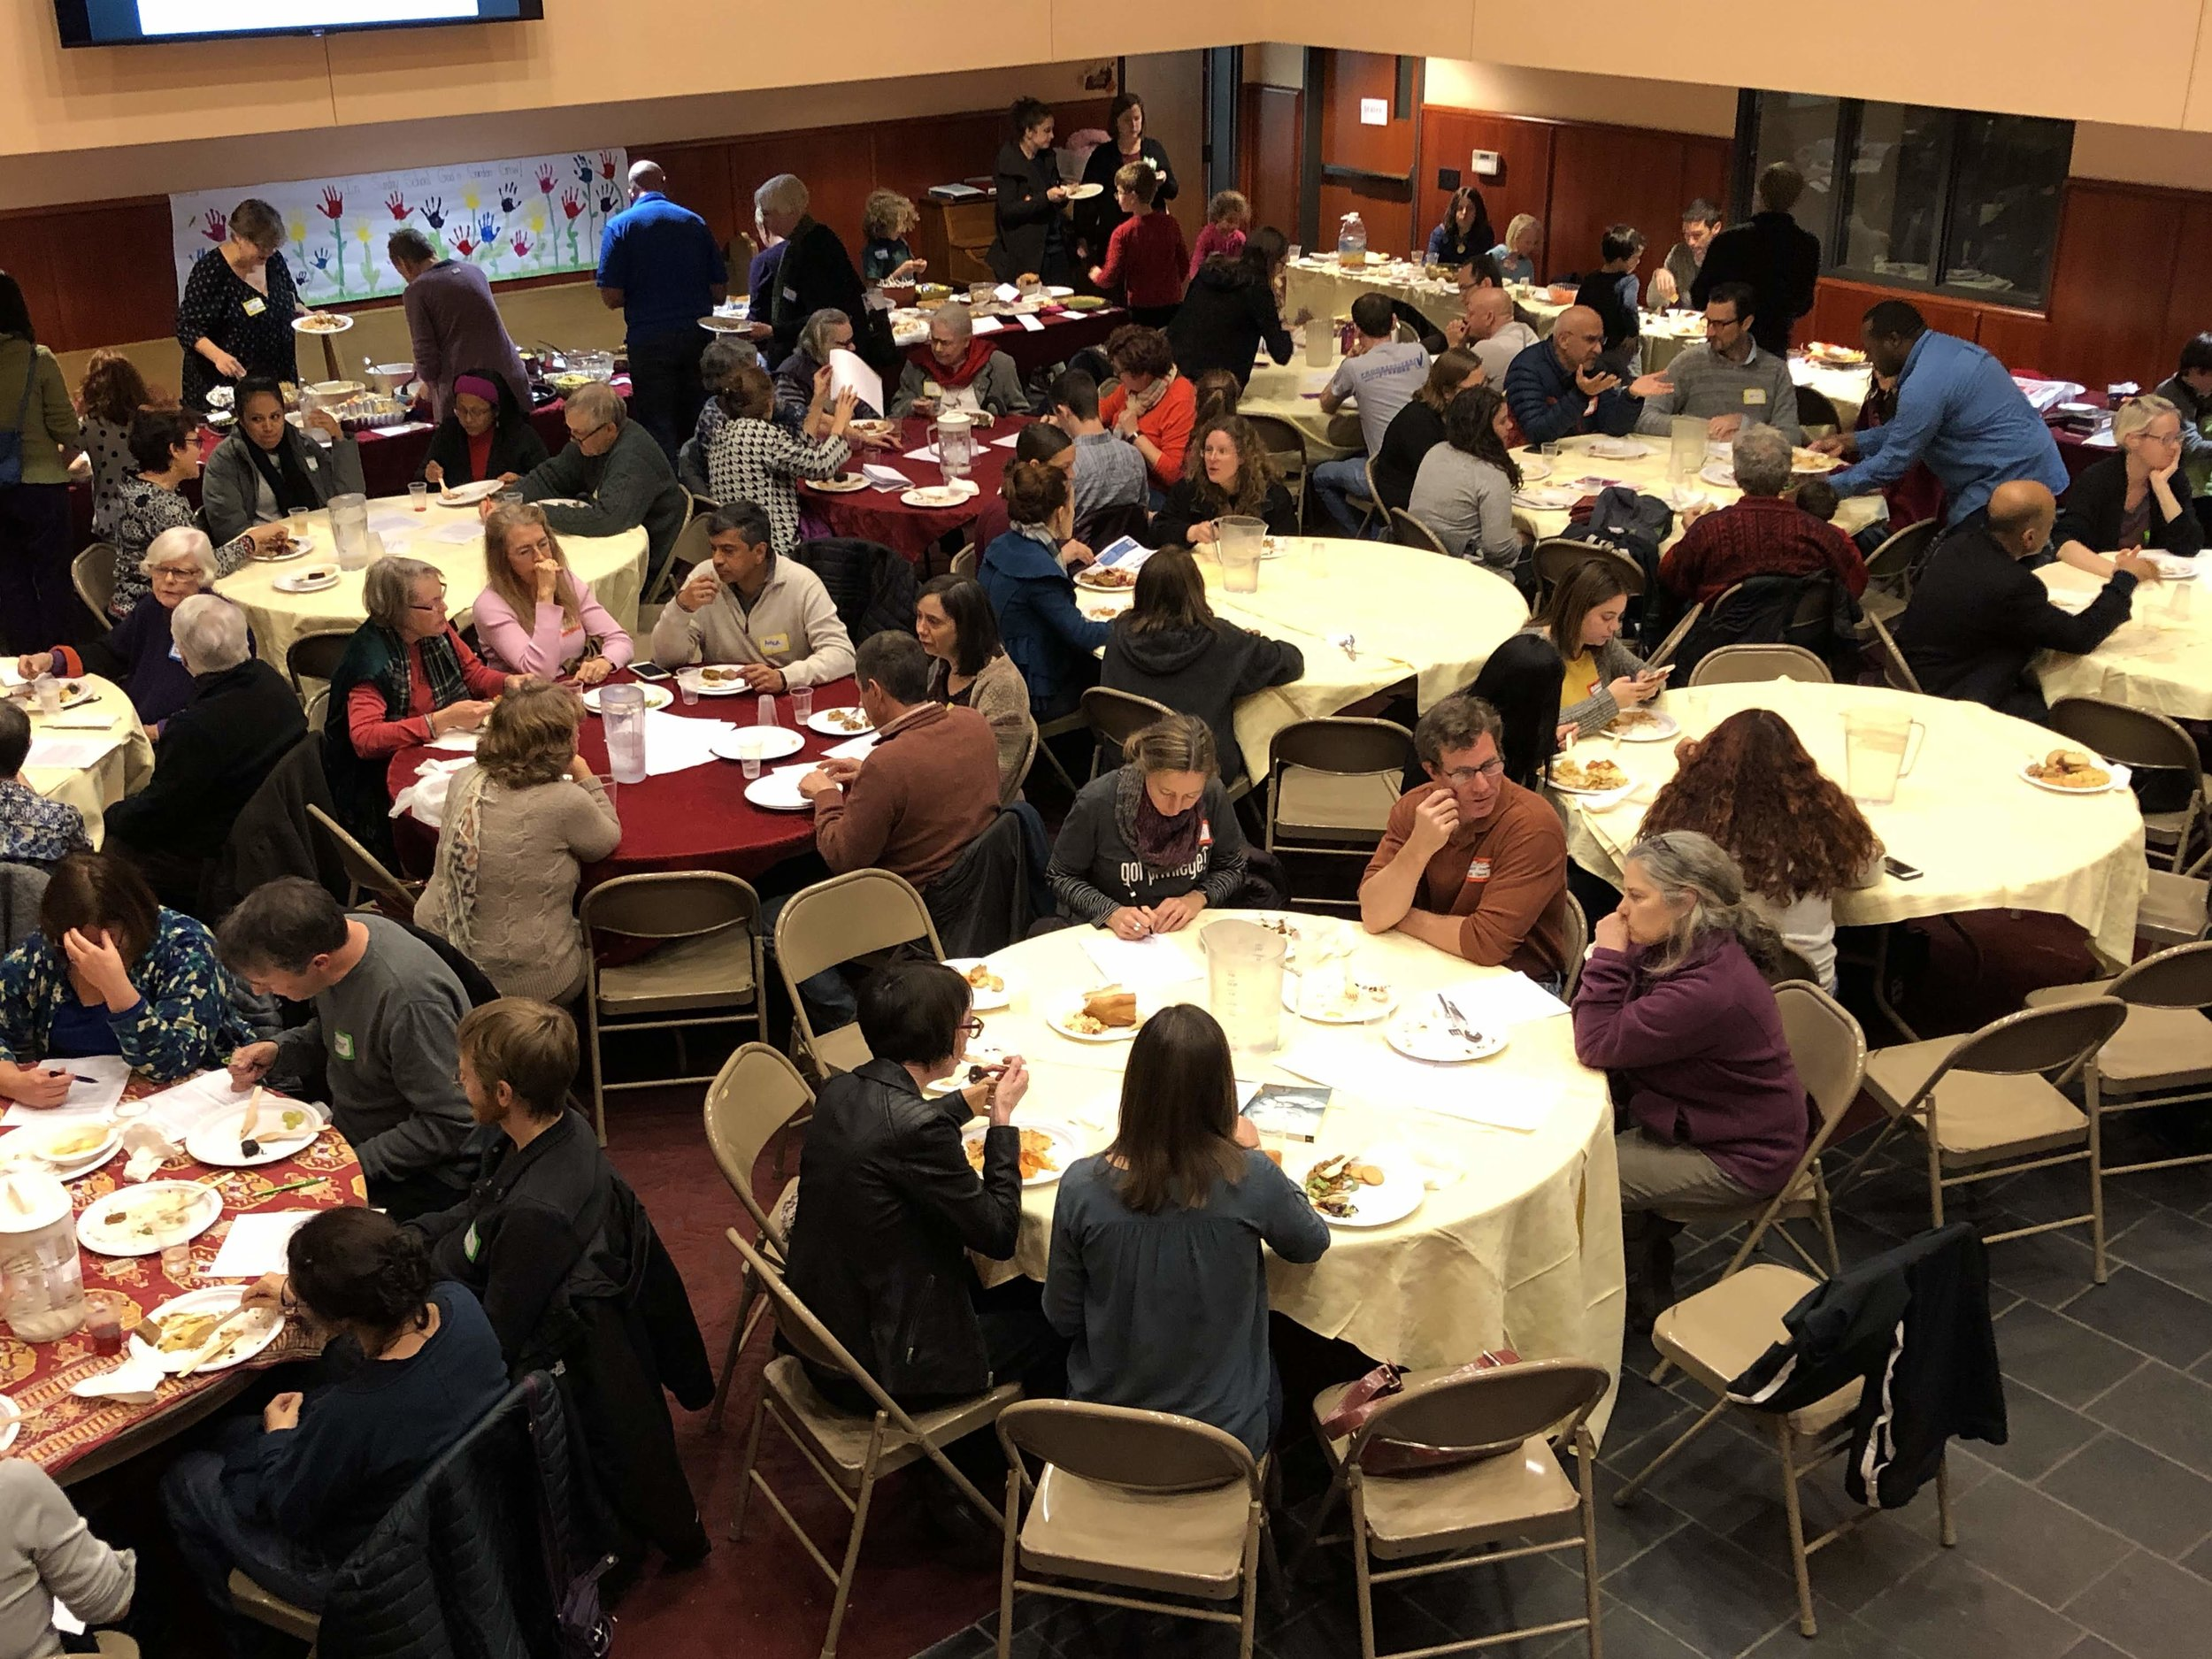 Families take part in the potluck after the talks.